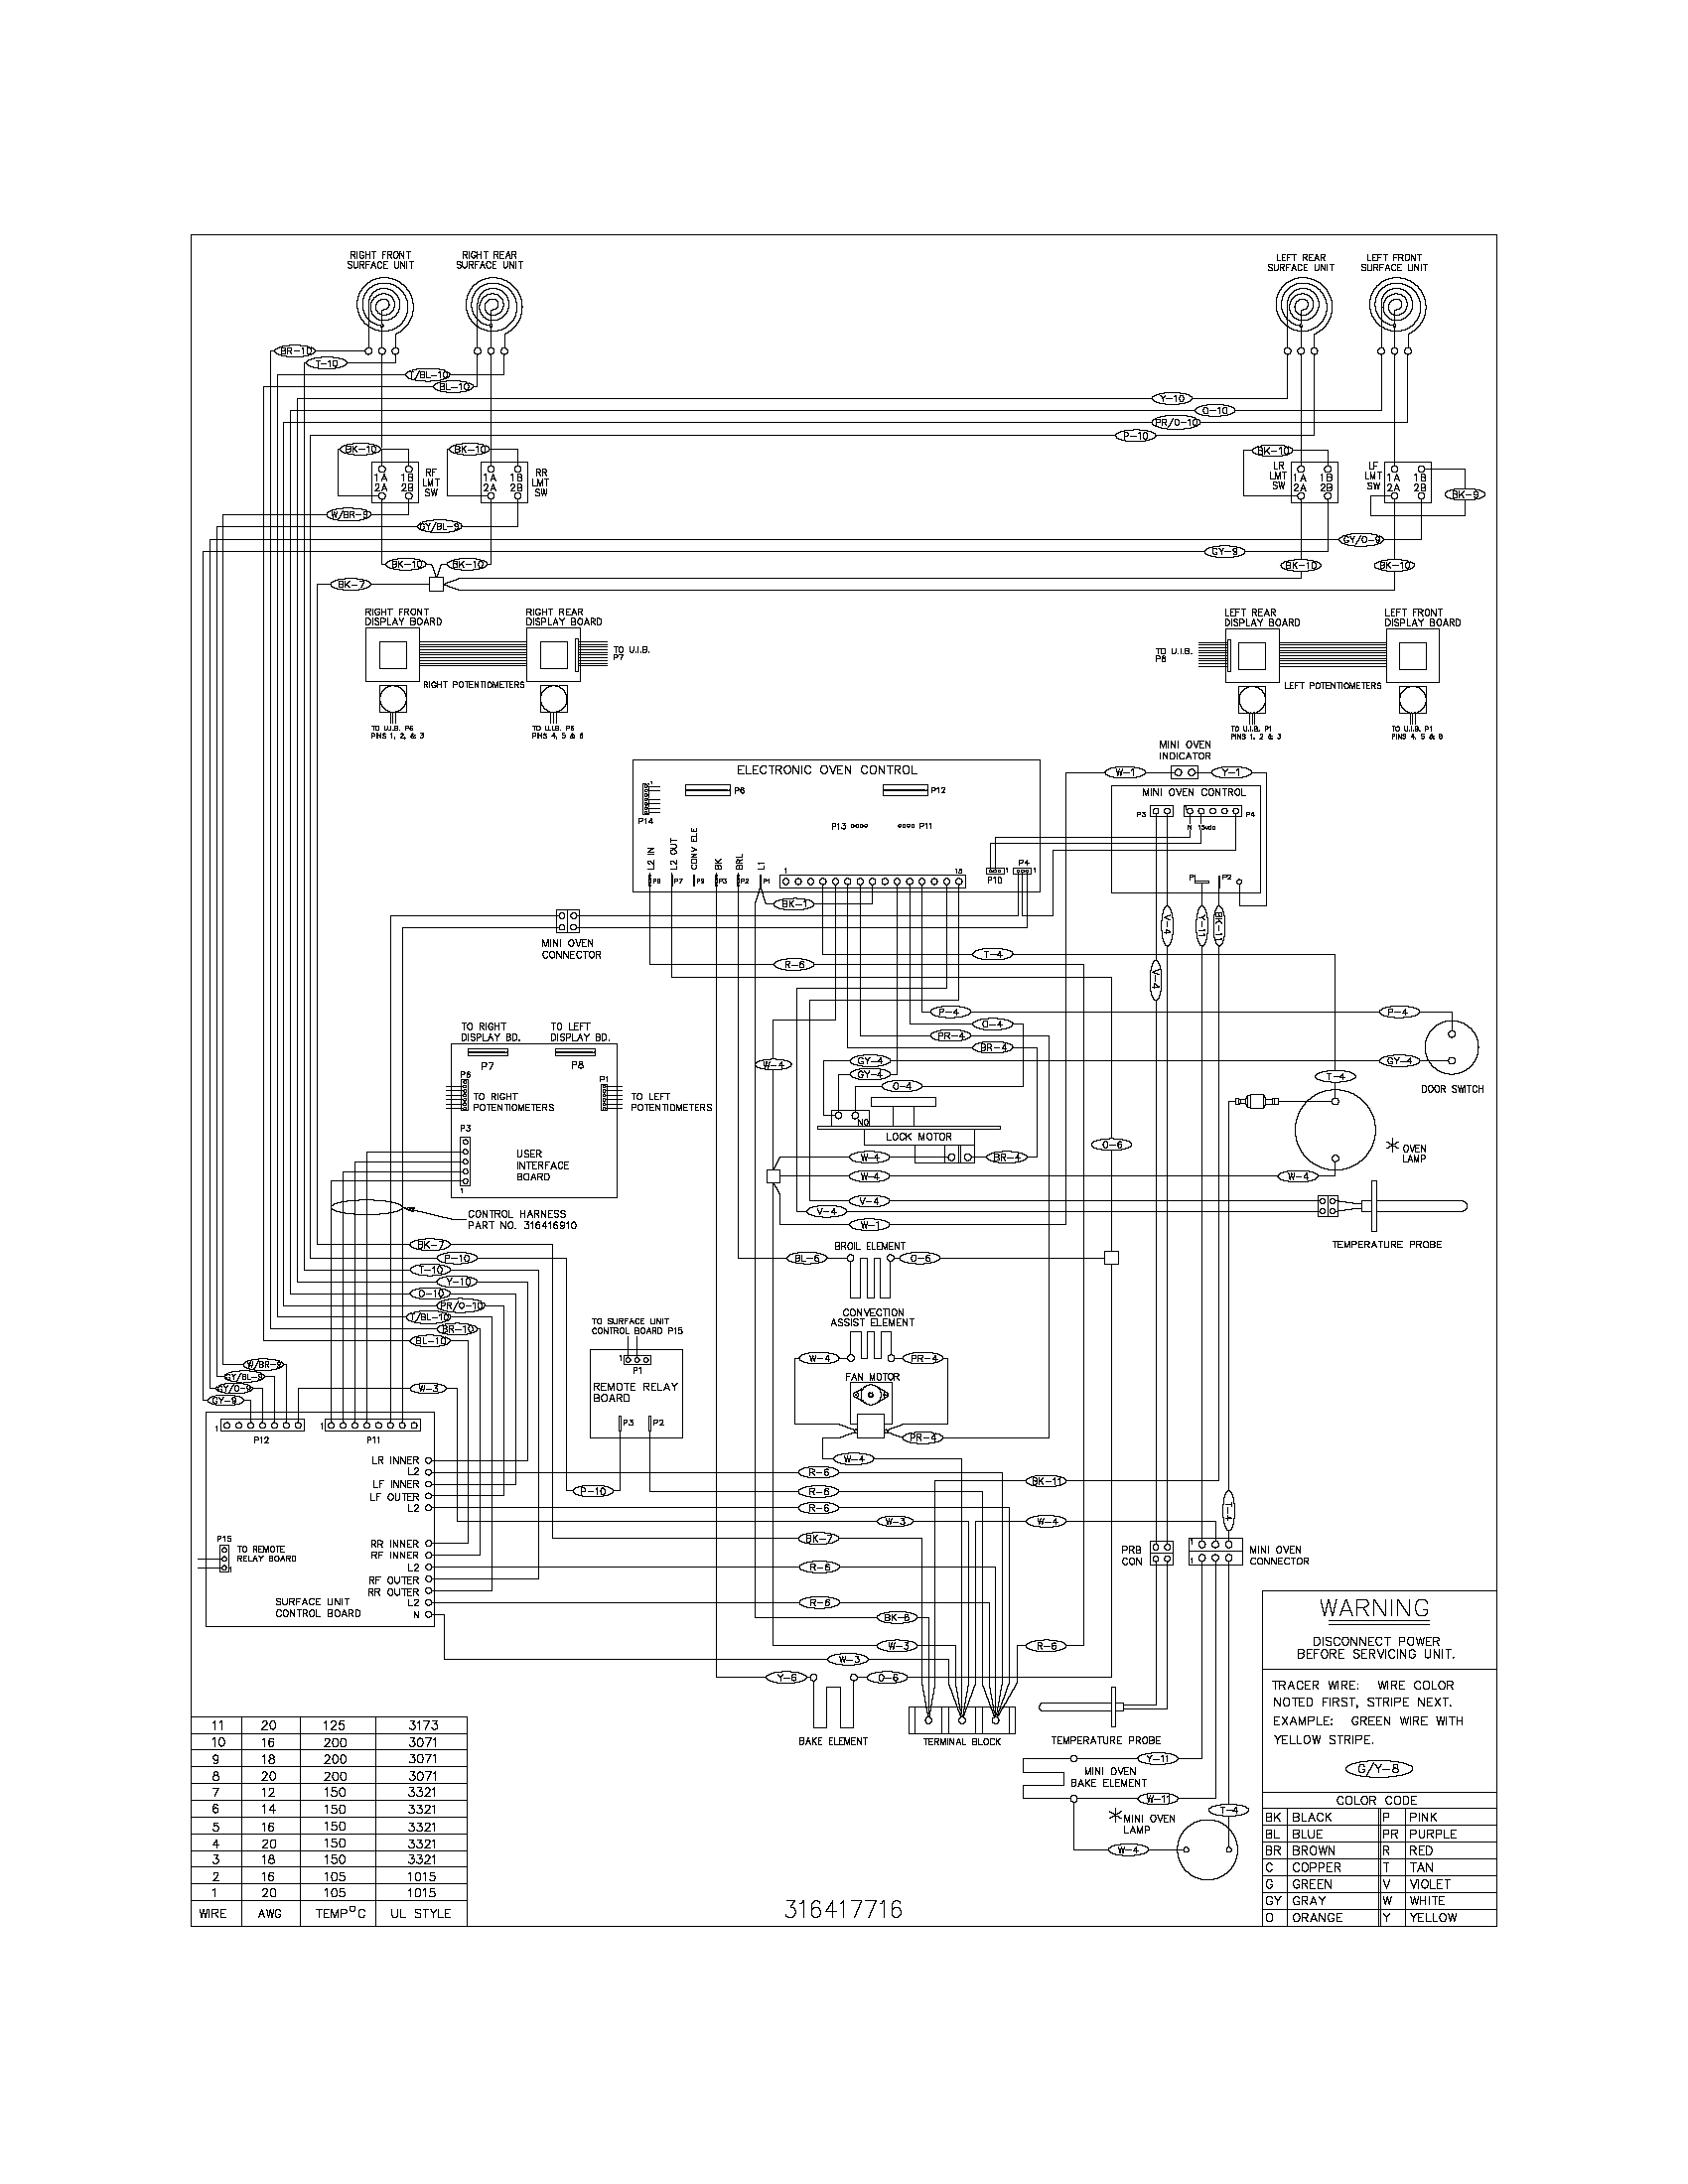 wiring diagram parts odes wiring diagram e z go wiring diagram \u2022 wiring diagrams j vespa vbb wiring diagram at gsmportal.co